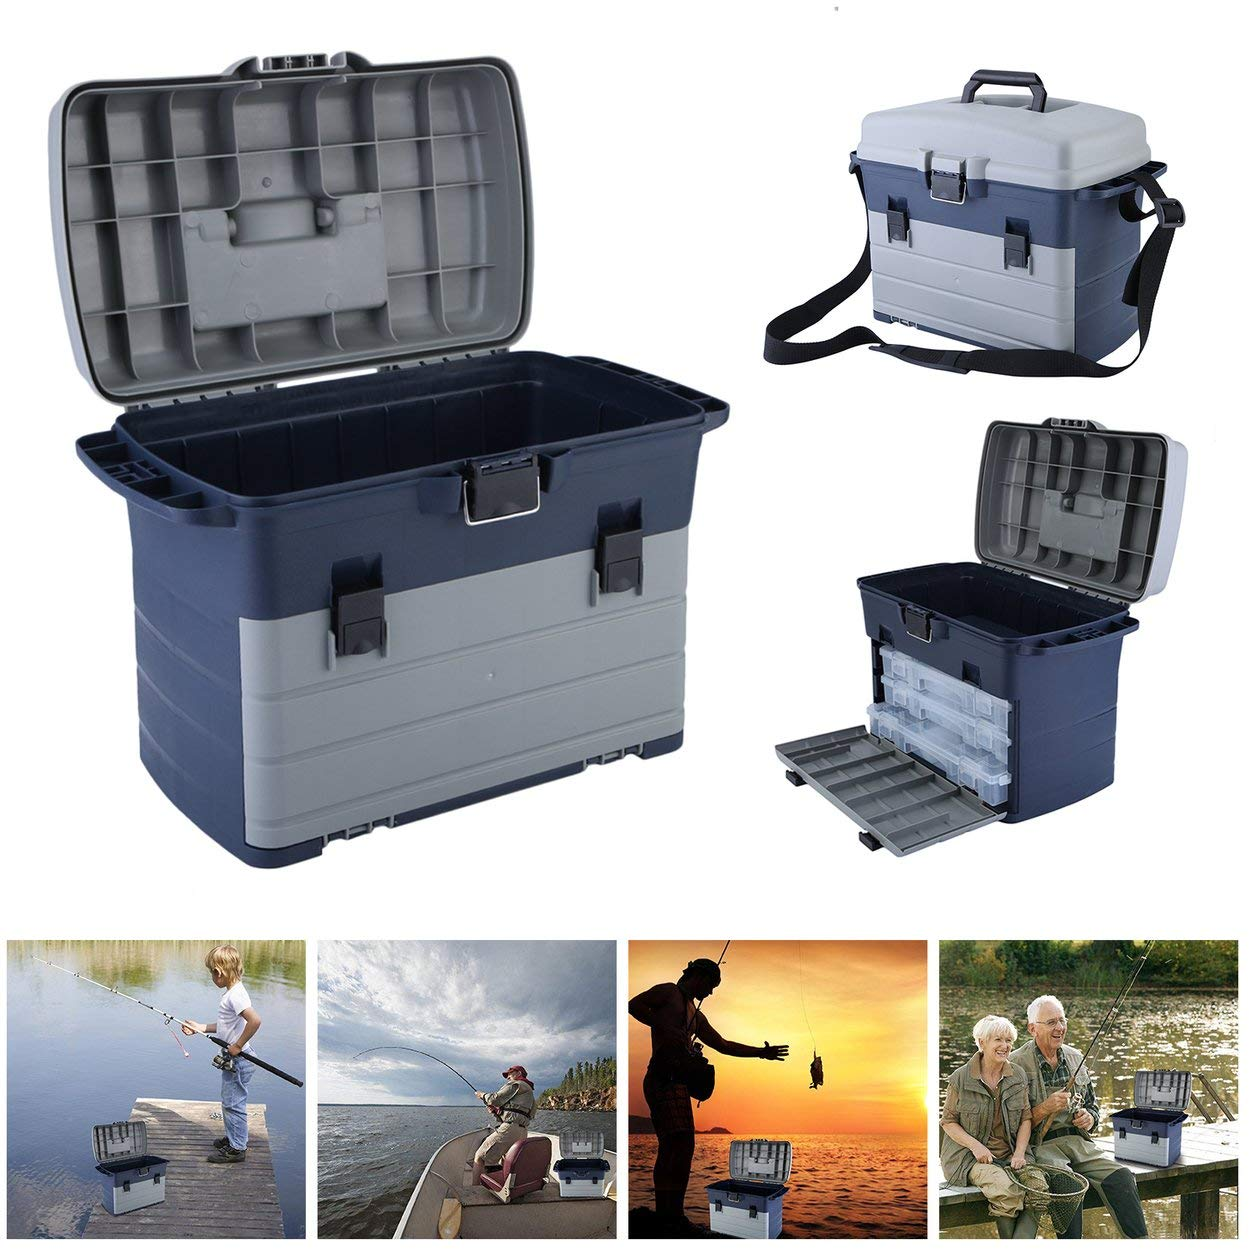 Dasny Heavy Duty Fishing Tackle Box 3 Layers Removable Trays Storage Organizer Case Tool Fishing Accessories Lures Bait Storage Box by Dasny (Image #6)